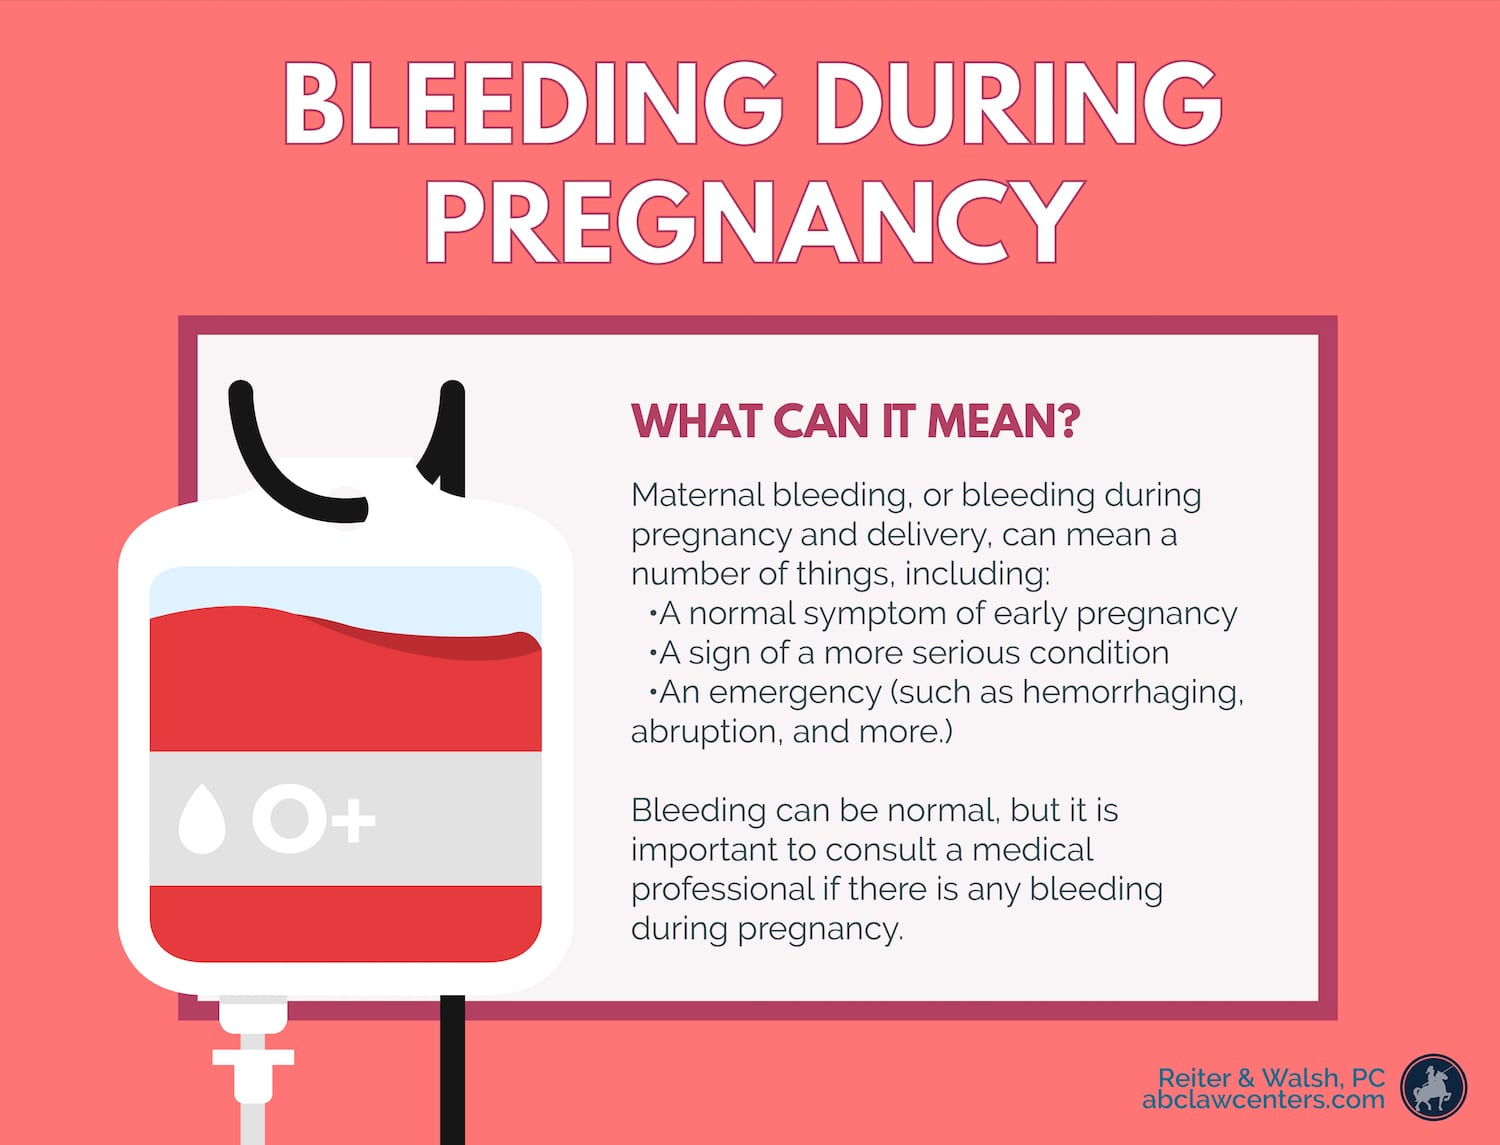 Bleeding During Pregnancy and Delivery | ABC Law Centers